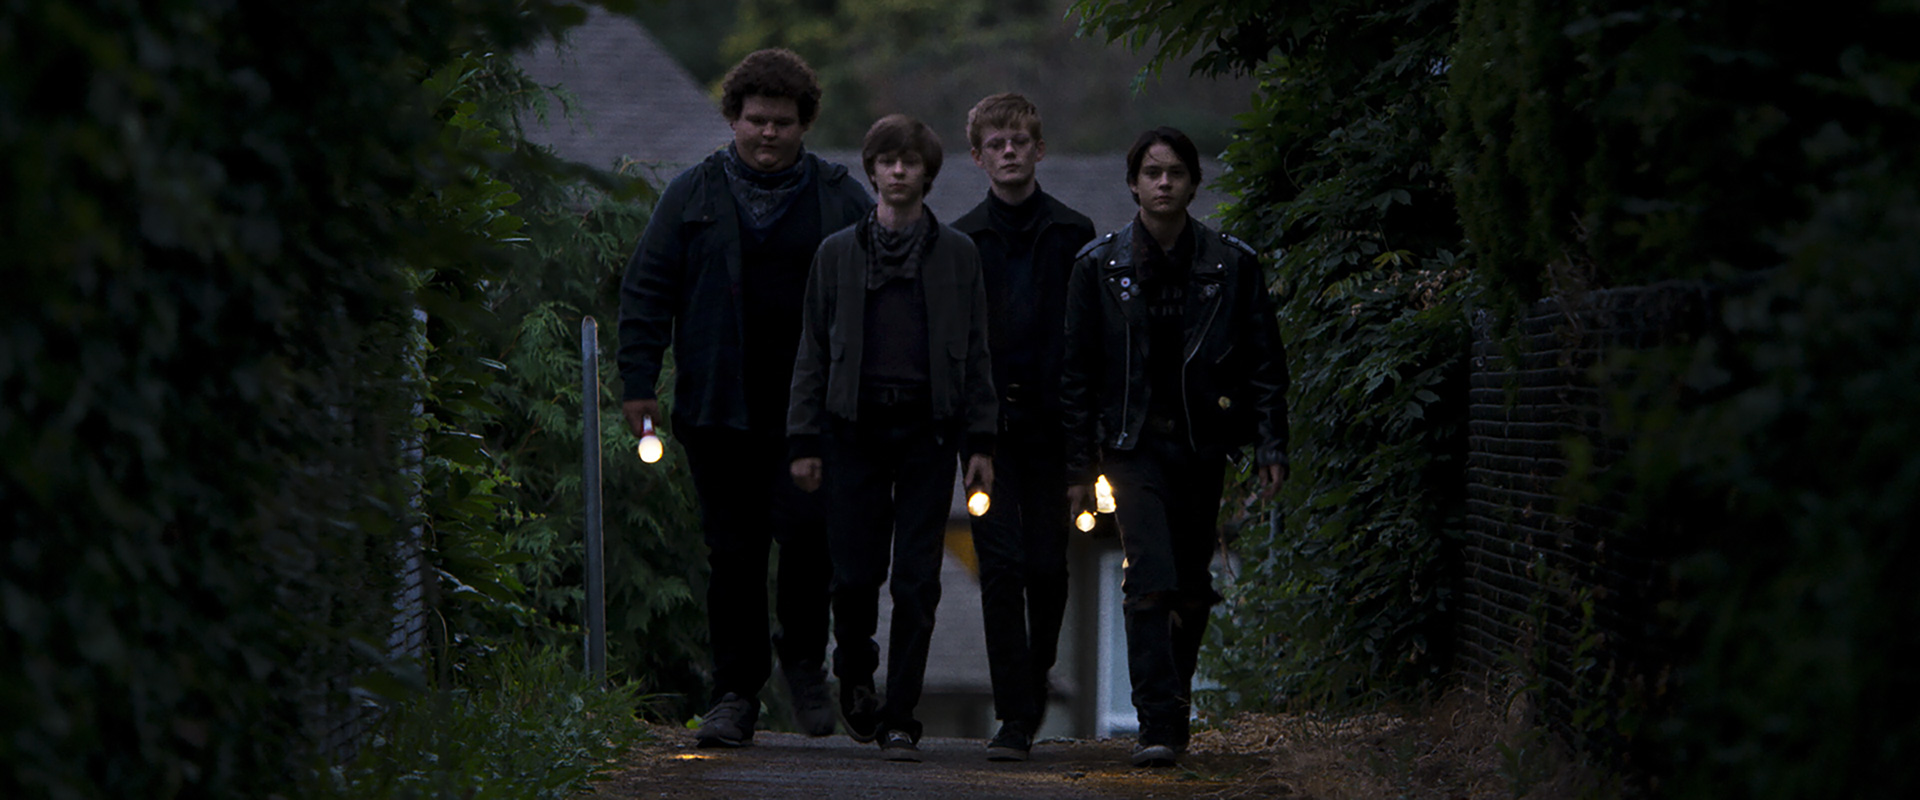 Caleb Emery, Graham Verchere, Cory Grüter-Andrew and Judah Lewis in the film.